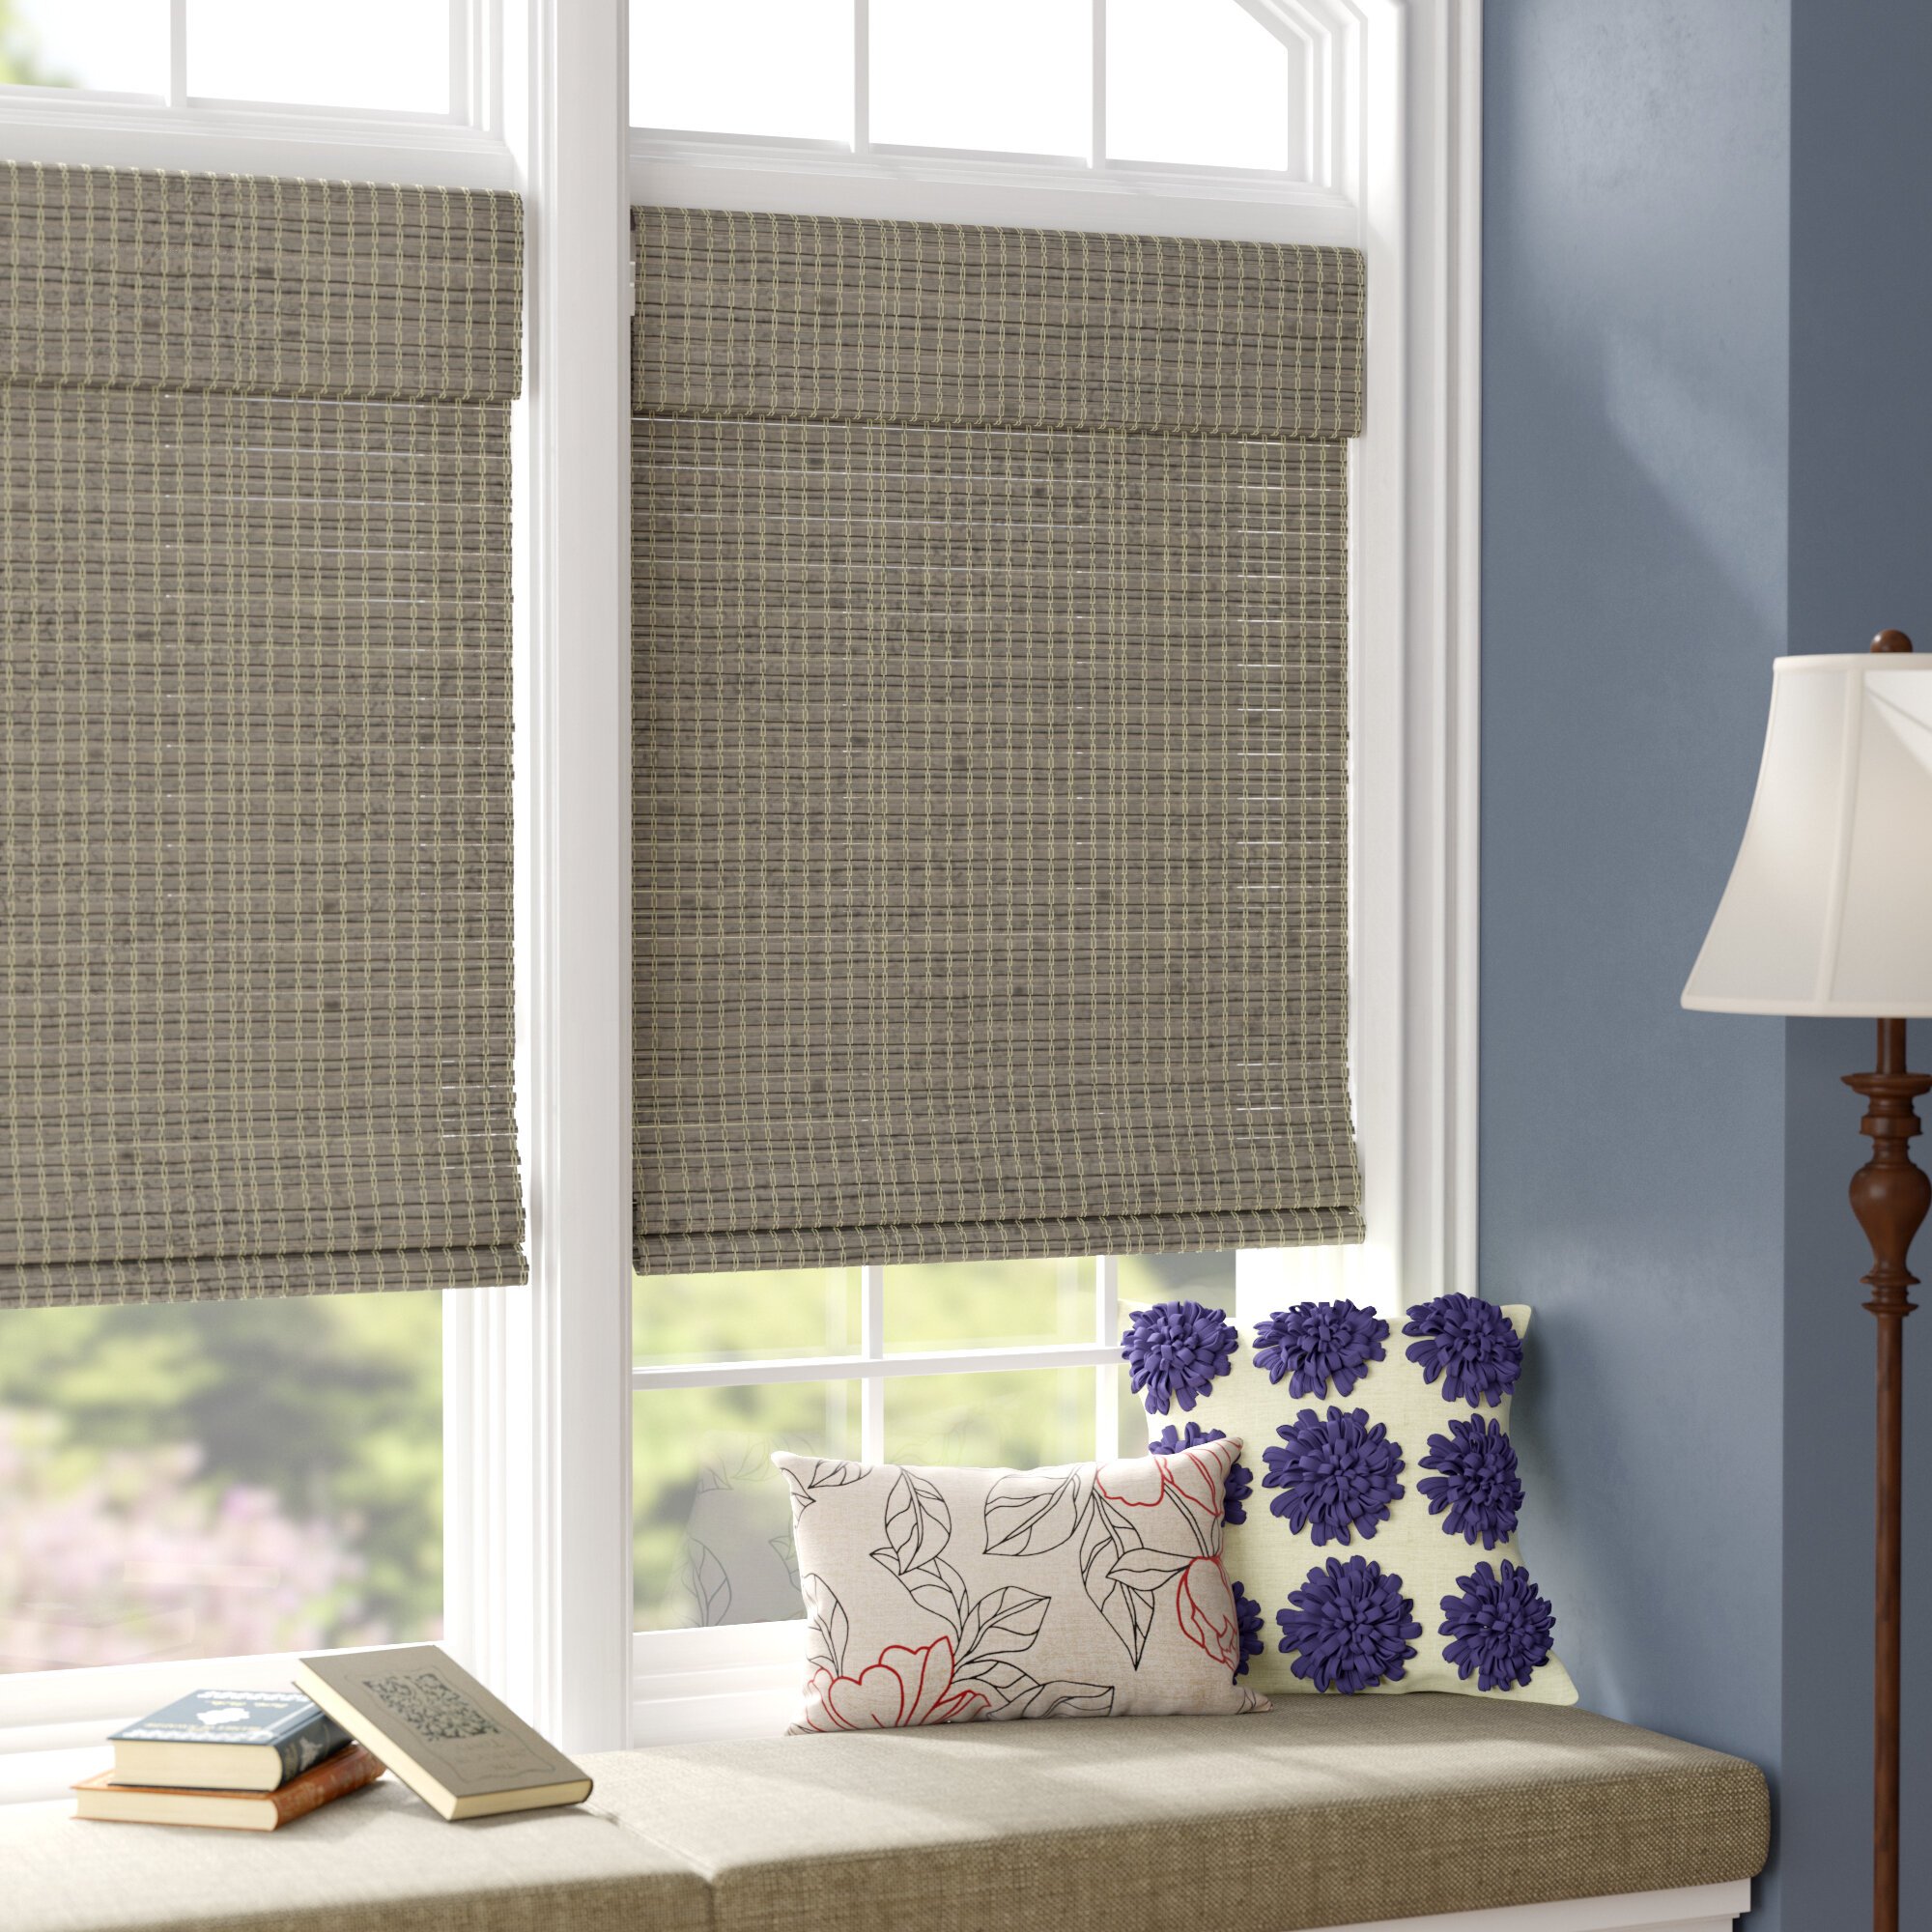 29 Best Roman Blinds By Tonic Living Images On Pinterest: Charlton Home Room Darkening Roman Shade & Reviews